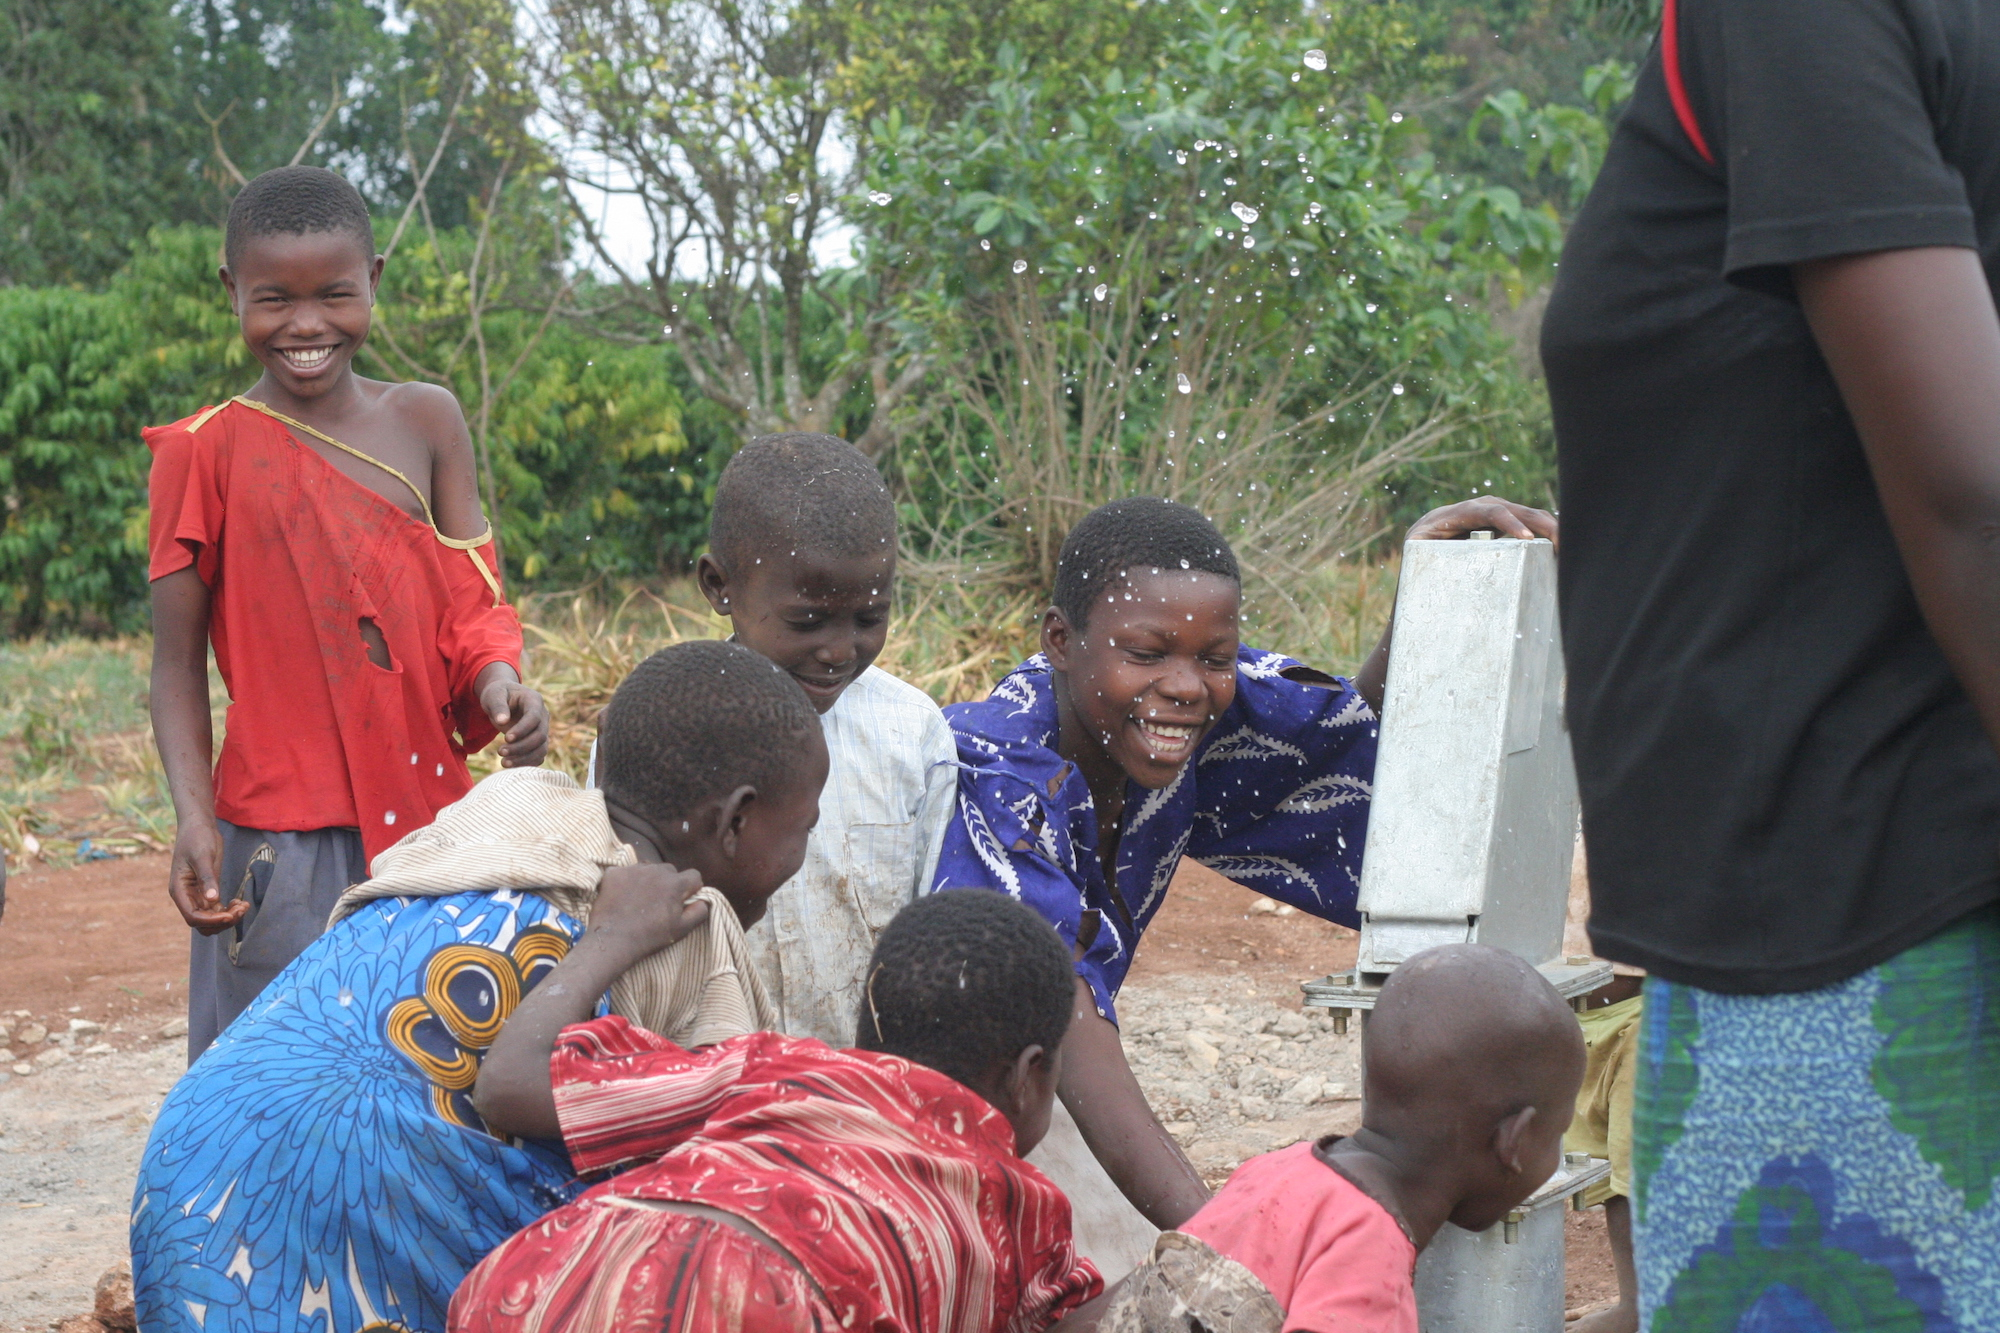 A group of kids at a water pump smiling